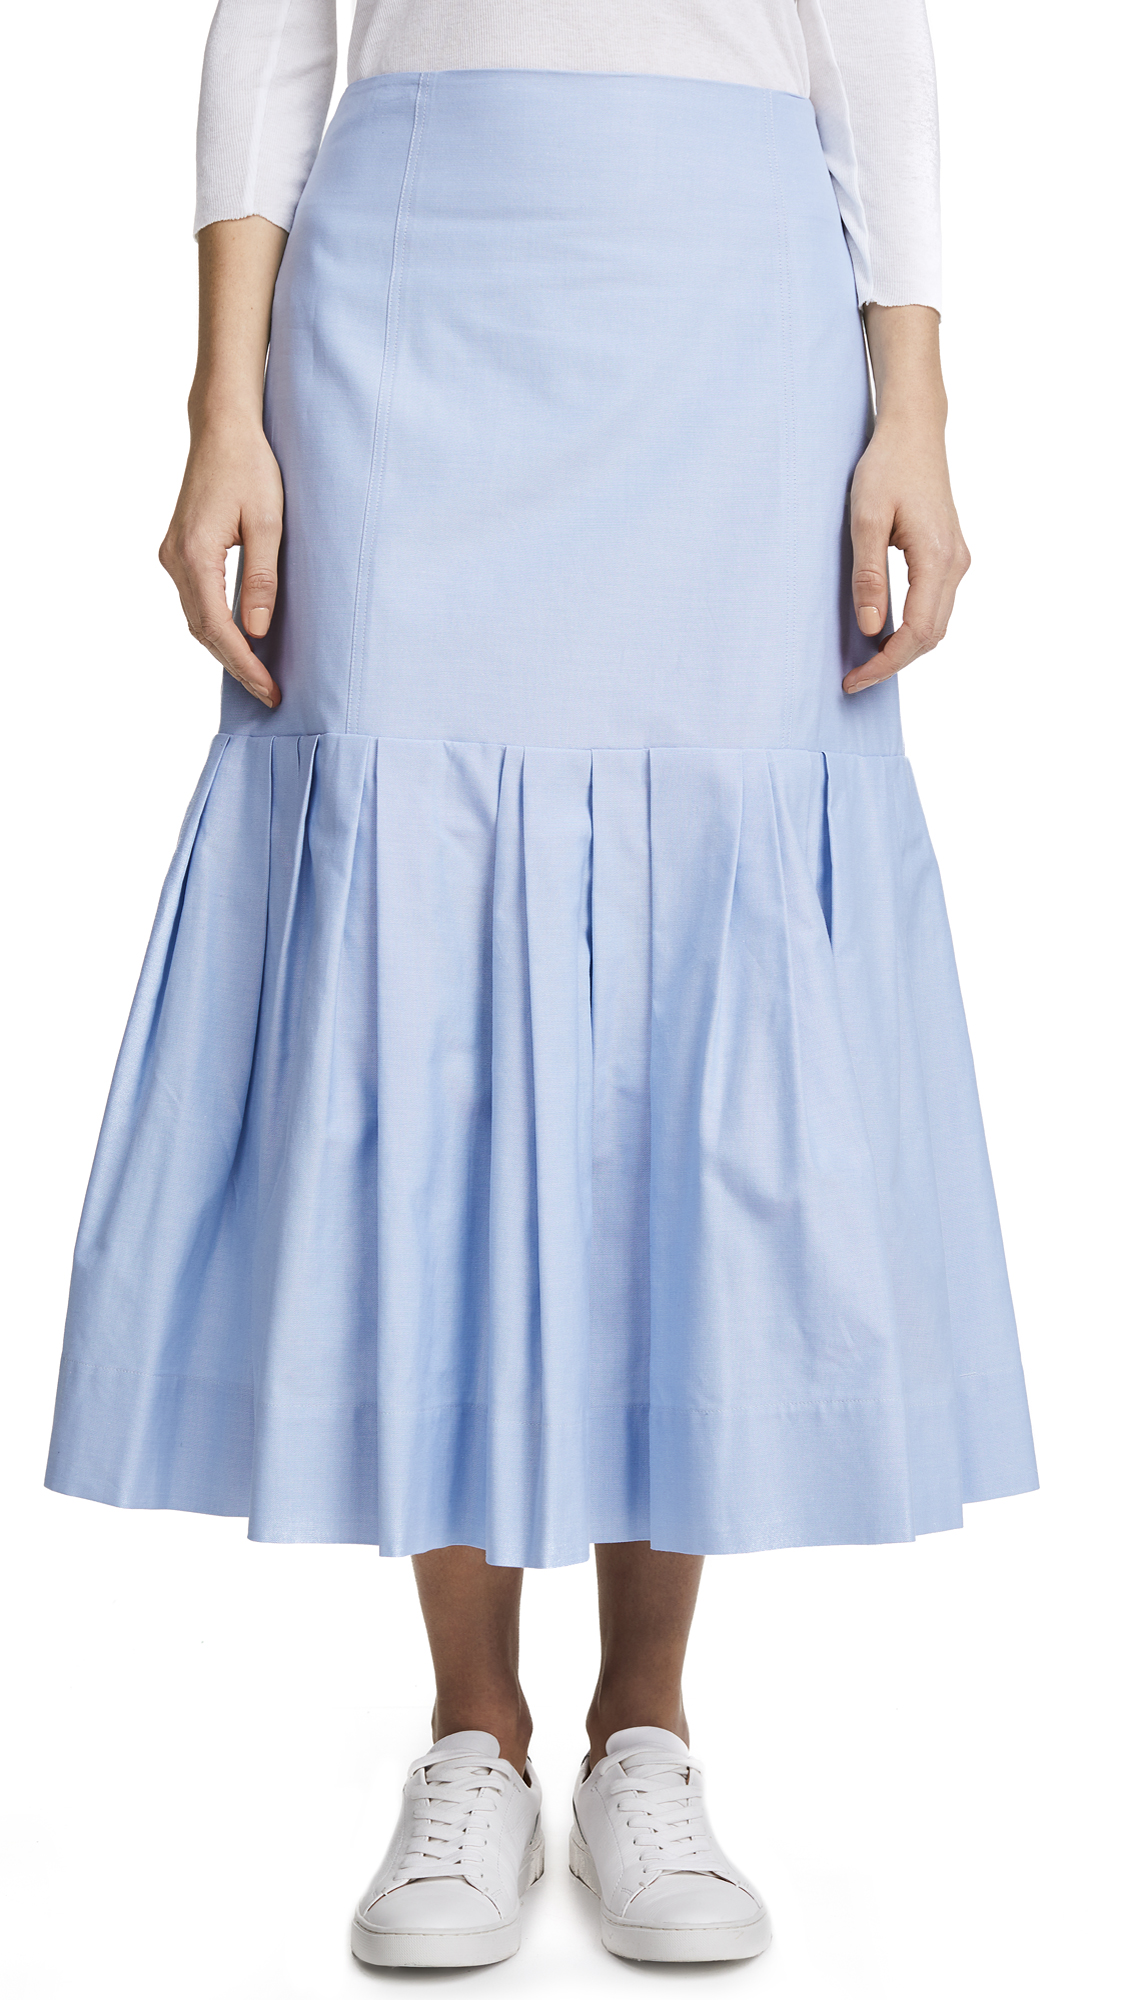 Protagonist Pleated Hem Skirt